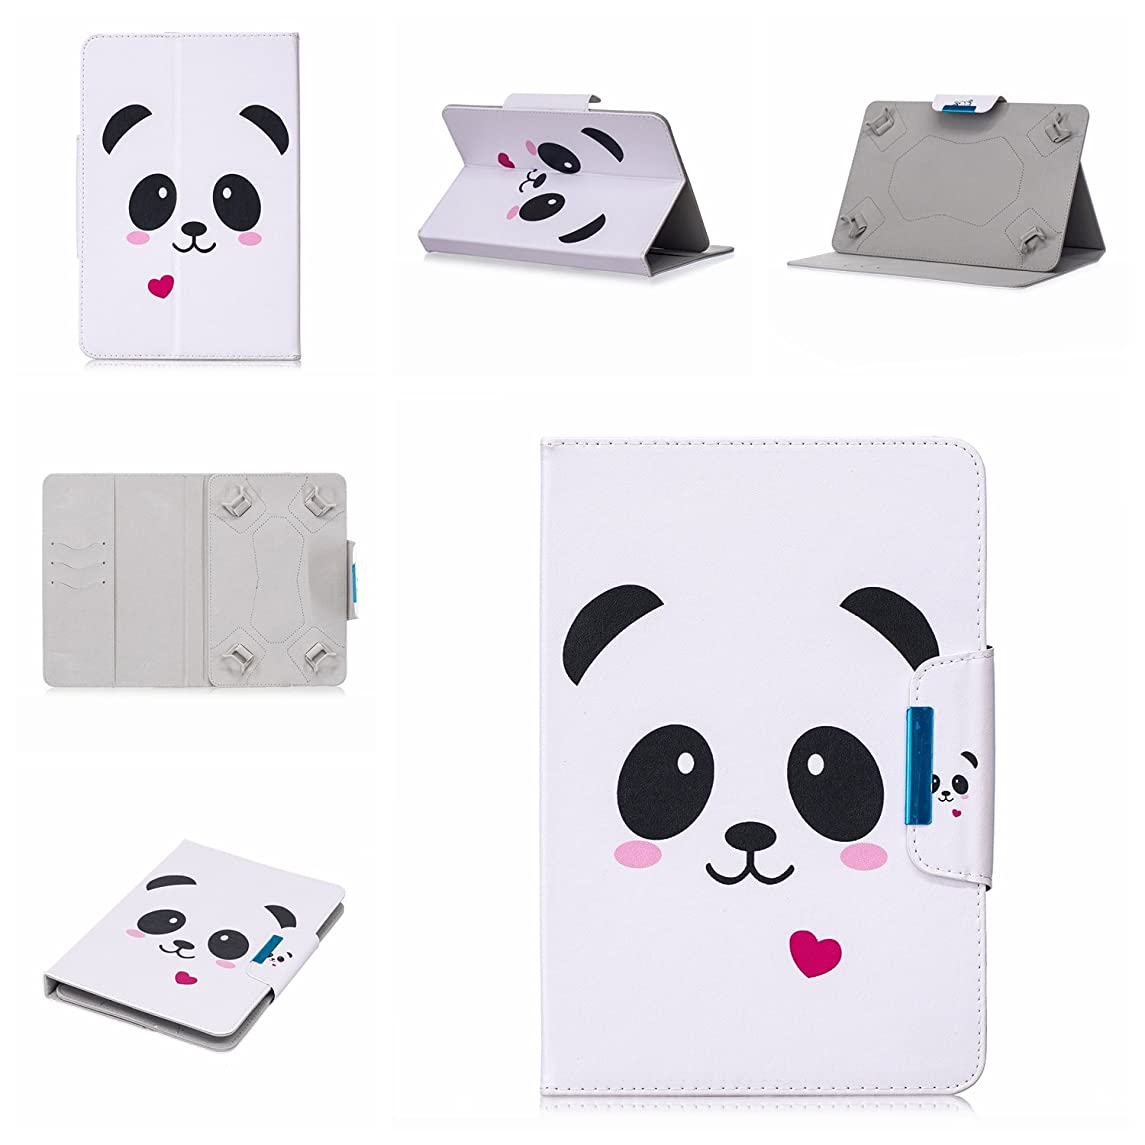 Uliking Universal Case for 8 inch Tablet, Slim PU Leather Folio Stand Cover with Magnetic Closure Cards Slots for 7.5